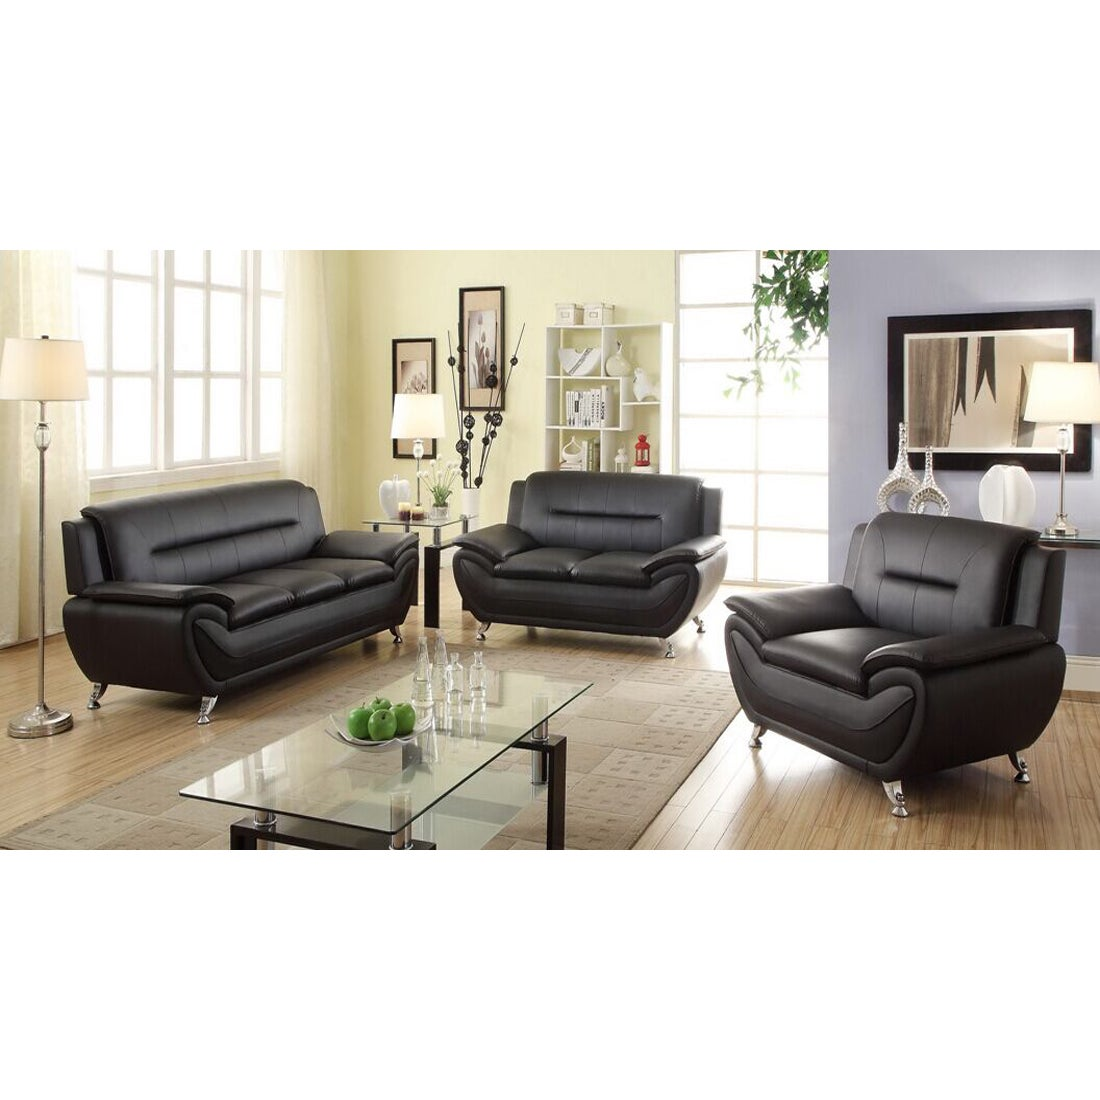 Alice Black Faux Leather 3-piece Modern Living Room Set - Free ...